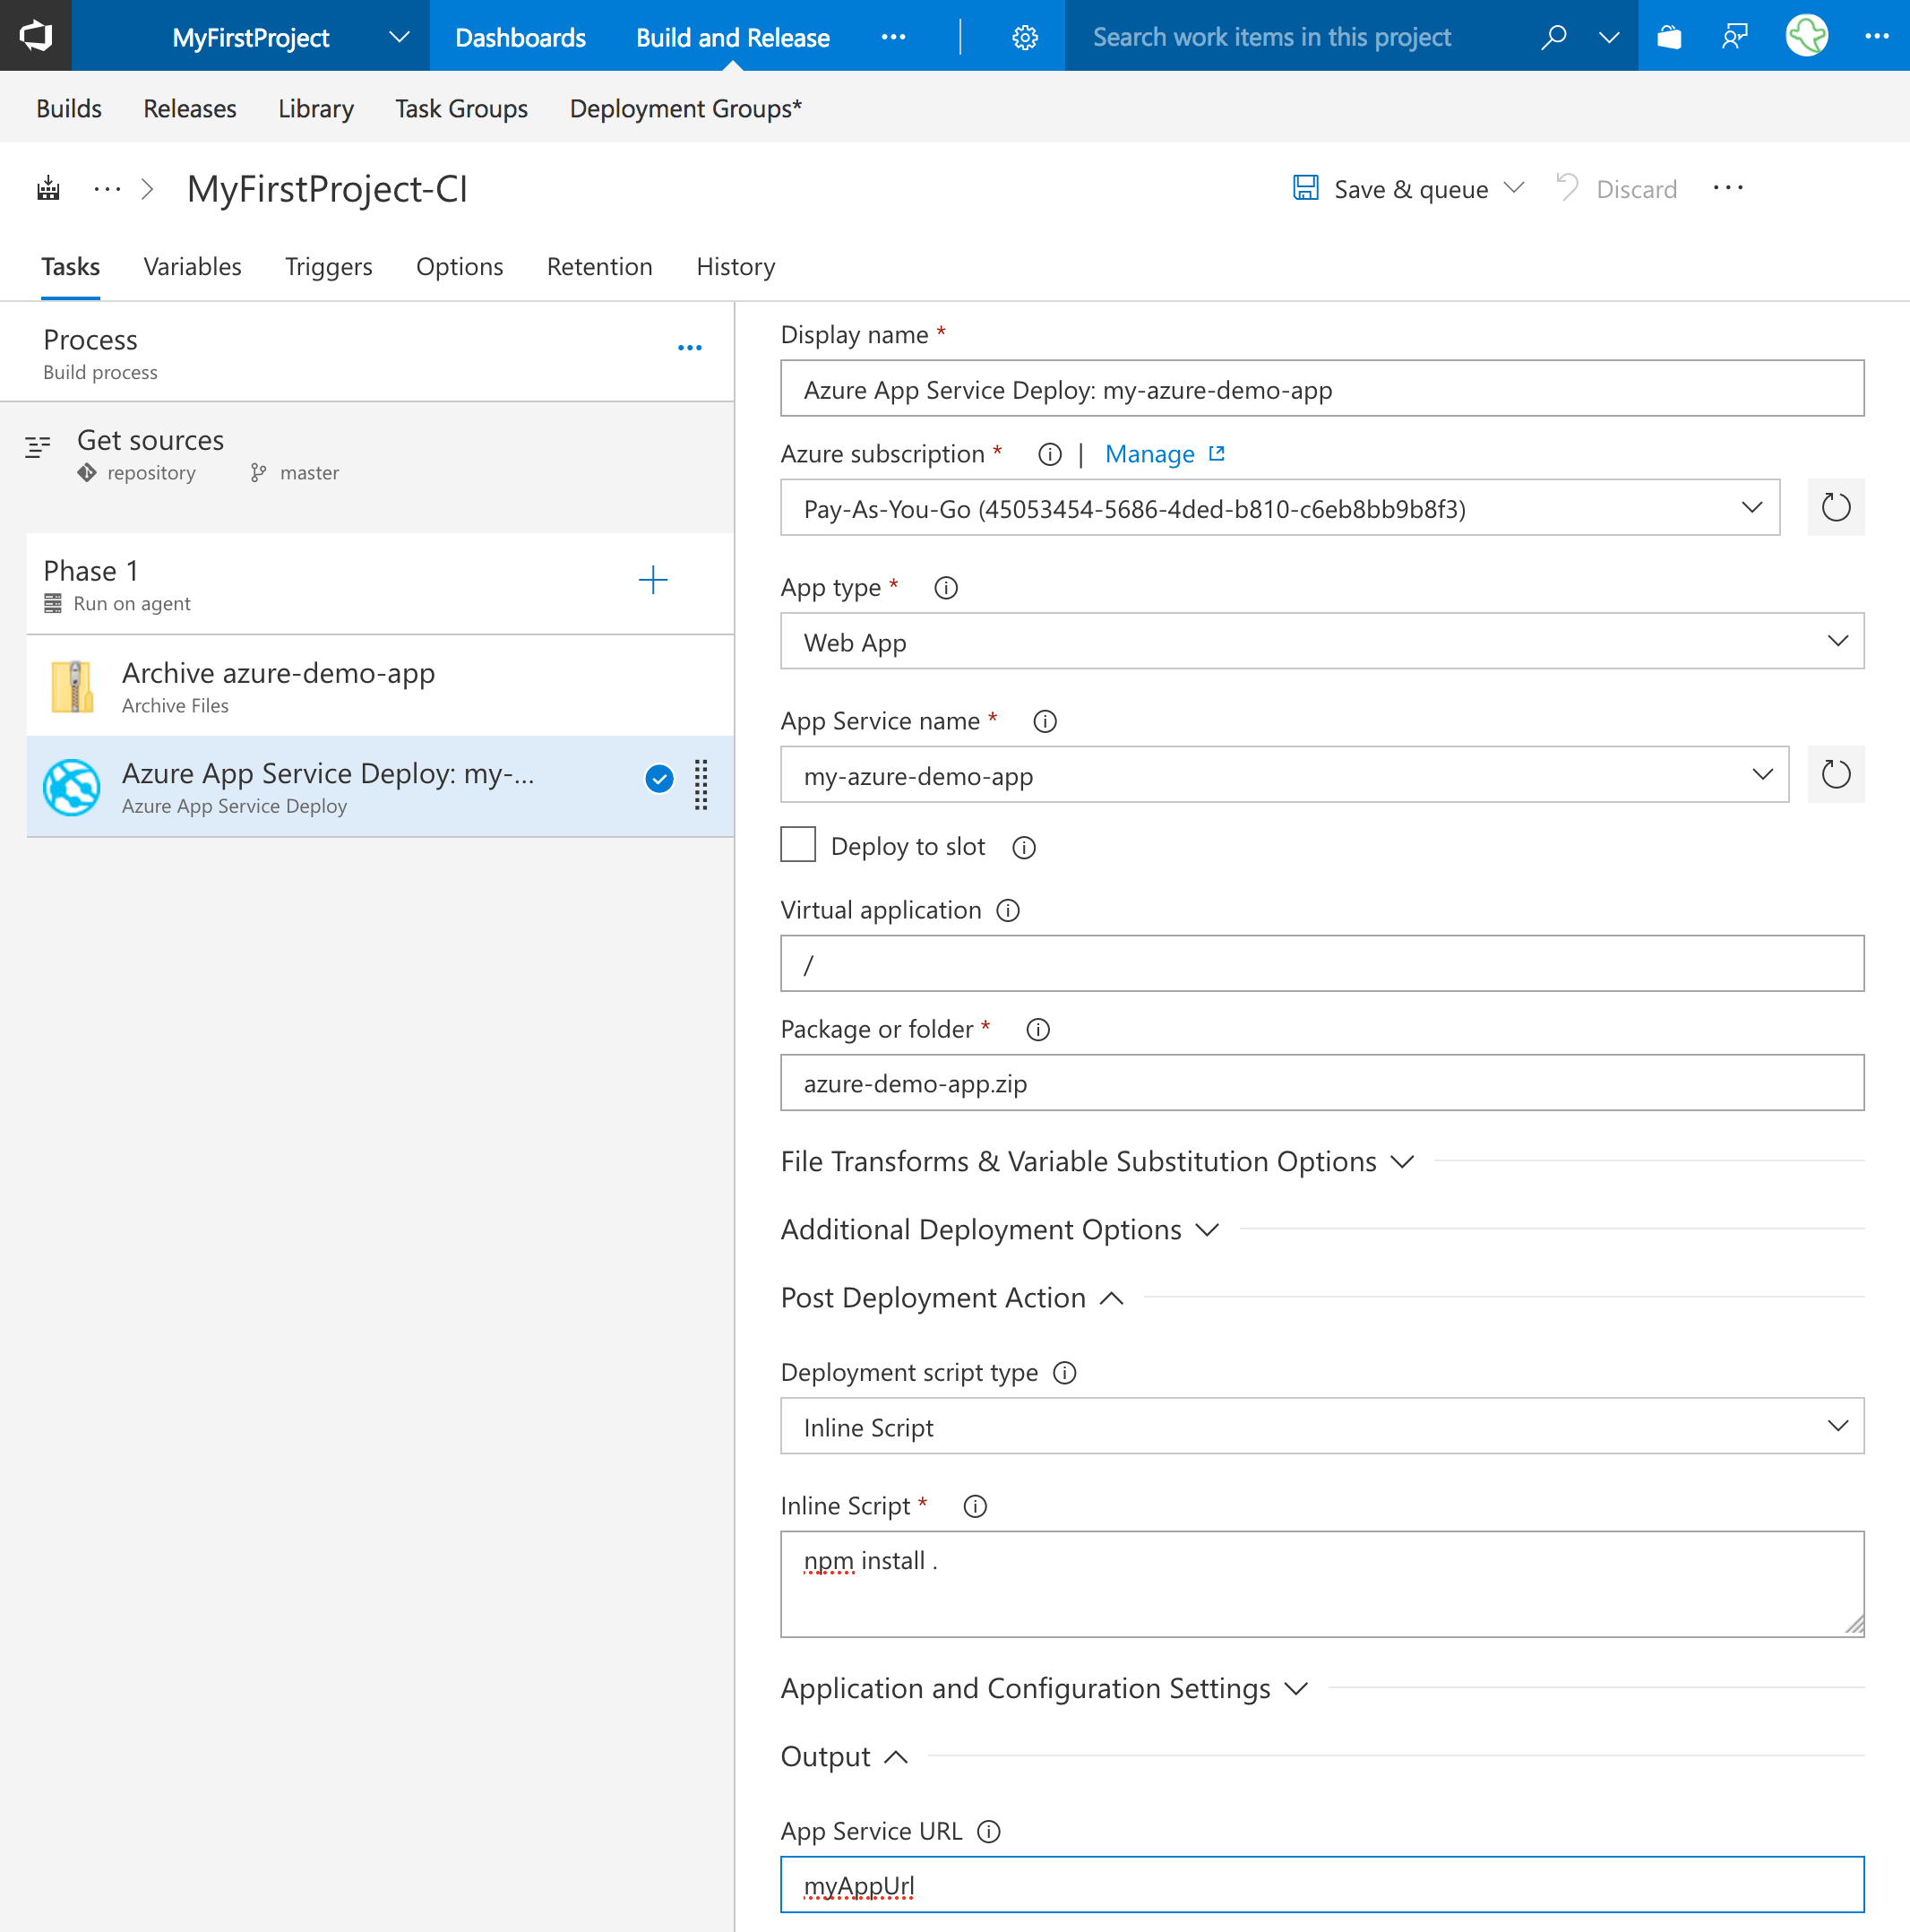 Add the Azure App Service Deploy task